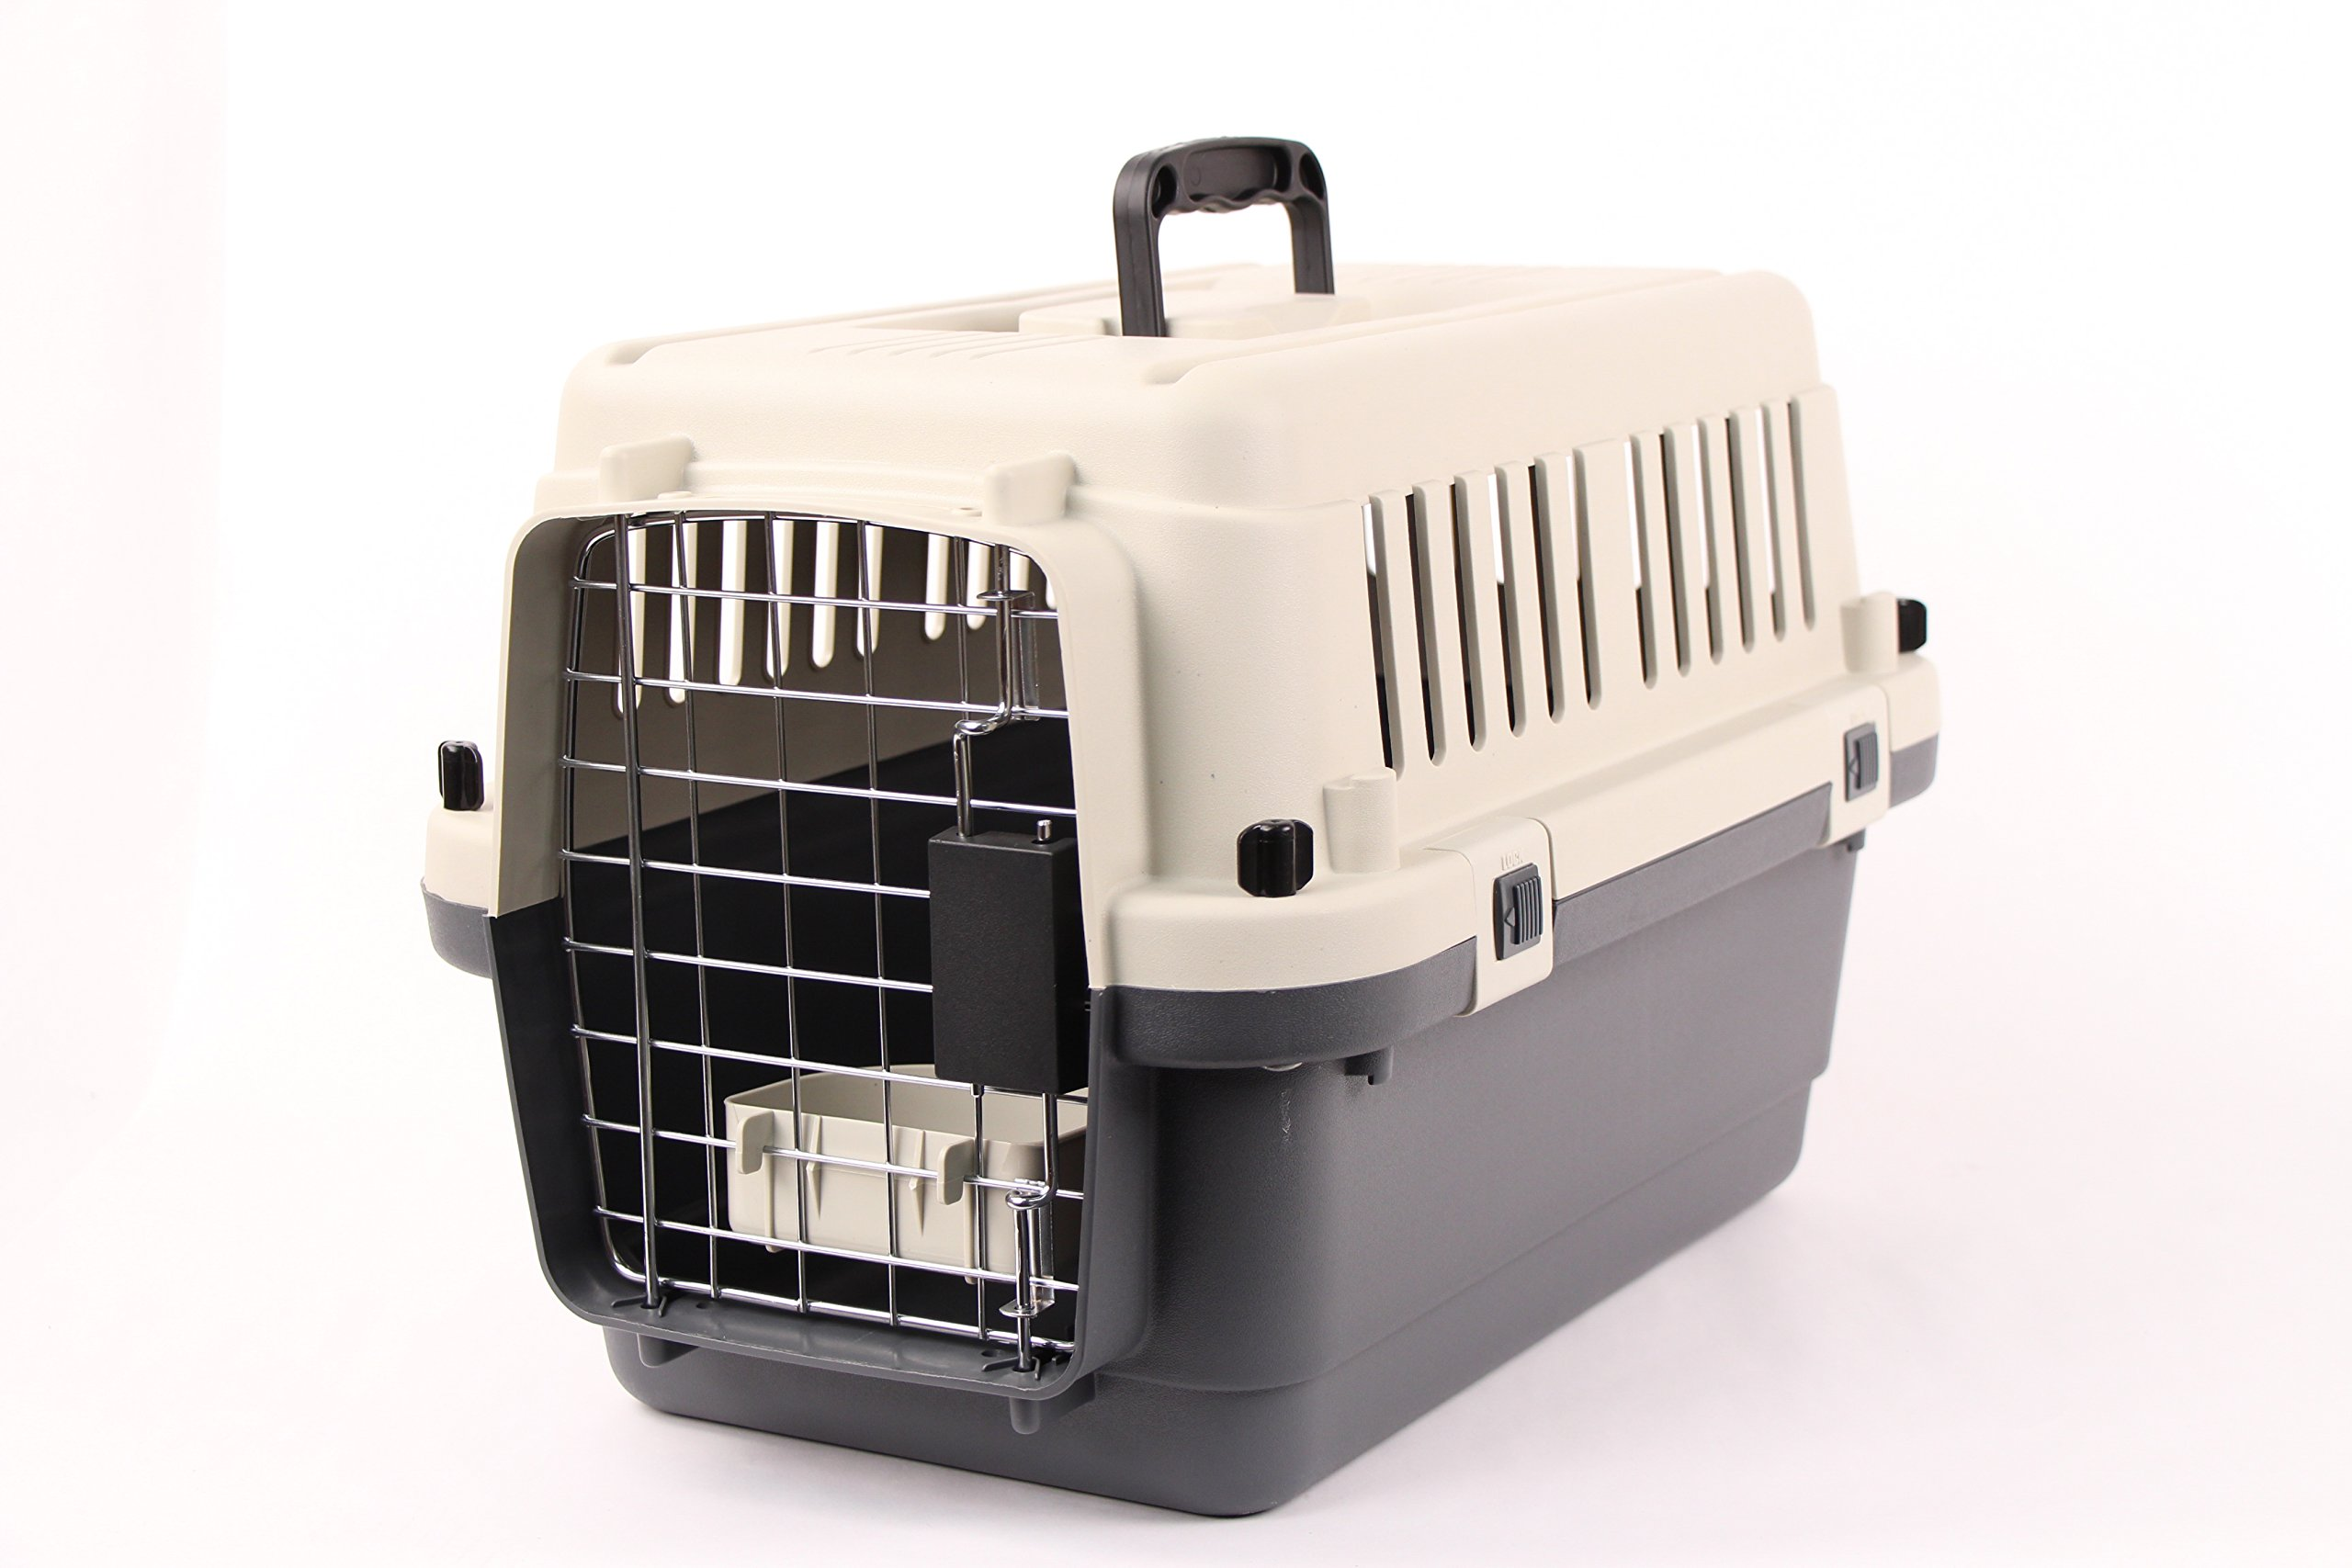 Pet Kennel Direct 24'' Airline Approved Plastic Dog / Cat Pet Kennel Carrier or Air Travel with Chrome Door and Free Cup Foldable Dog Travel Crate